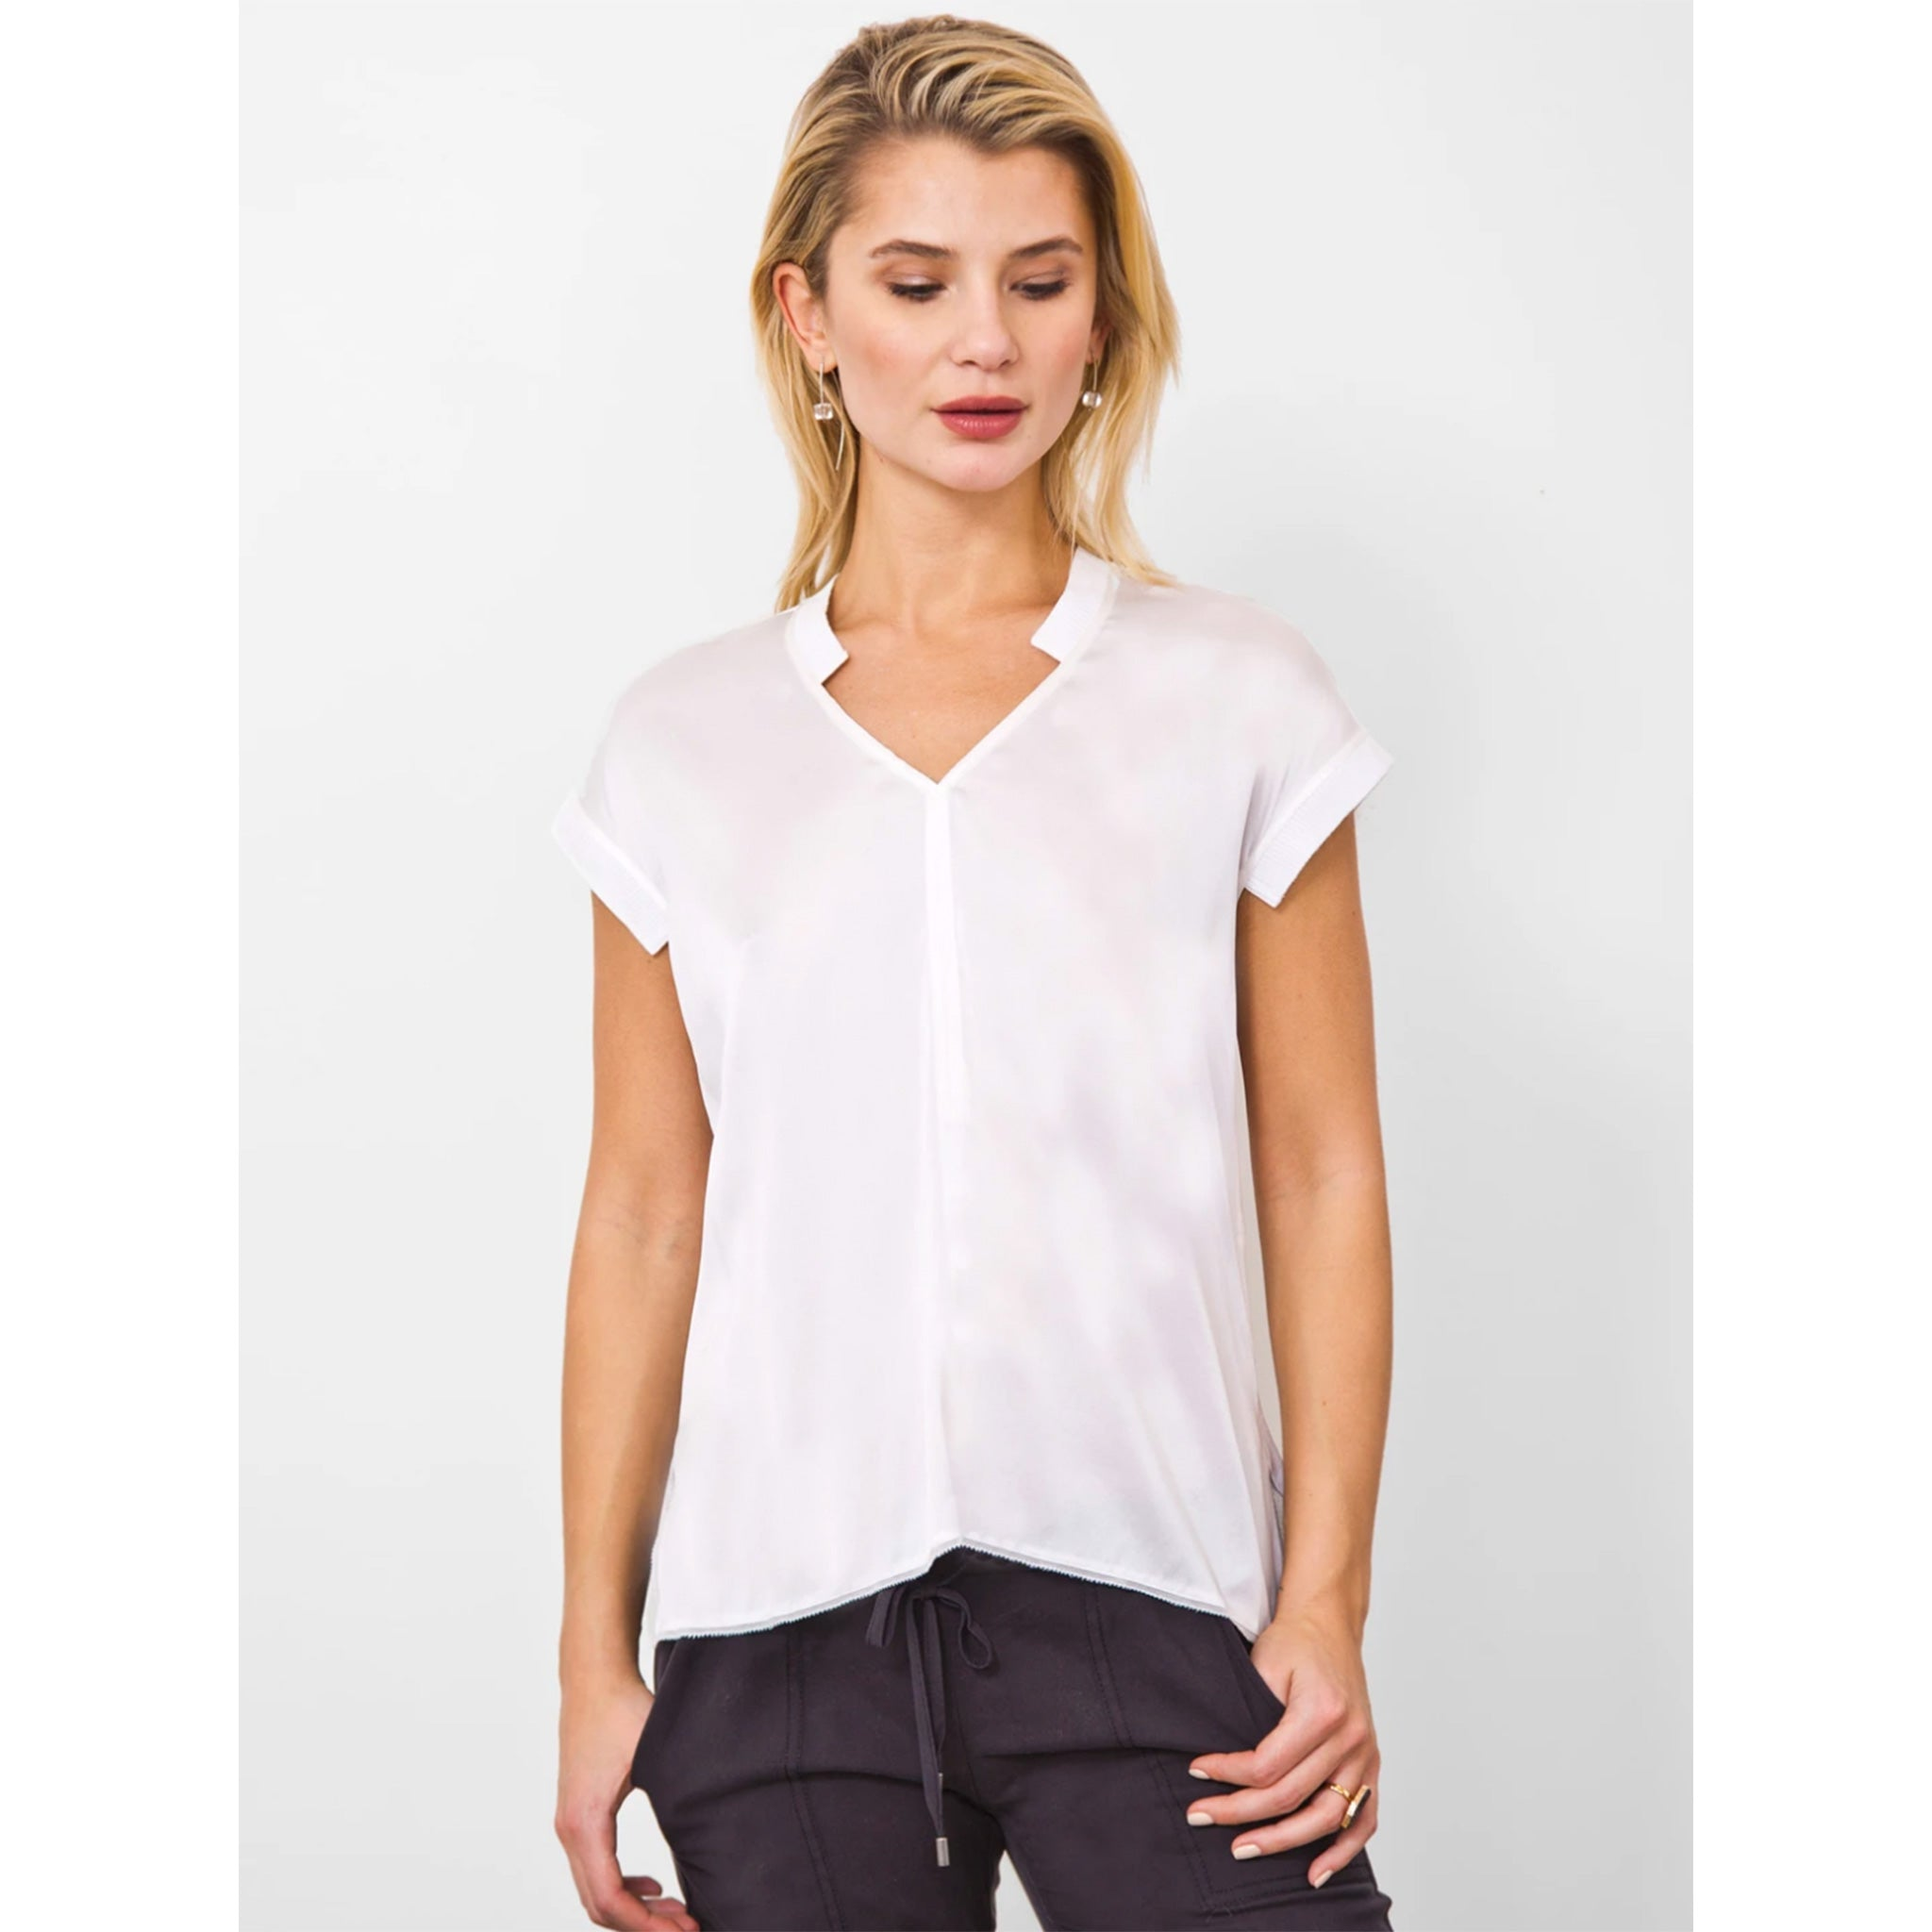 Go Silk ICONIC AnyTime Tee Shirt in White, front of shirt